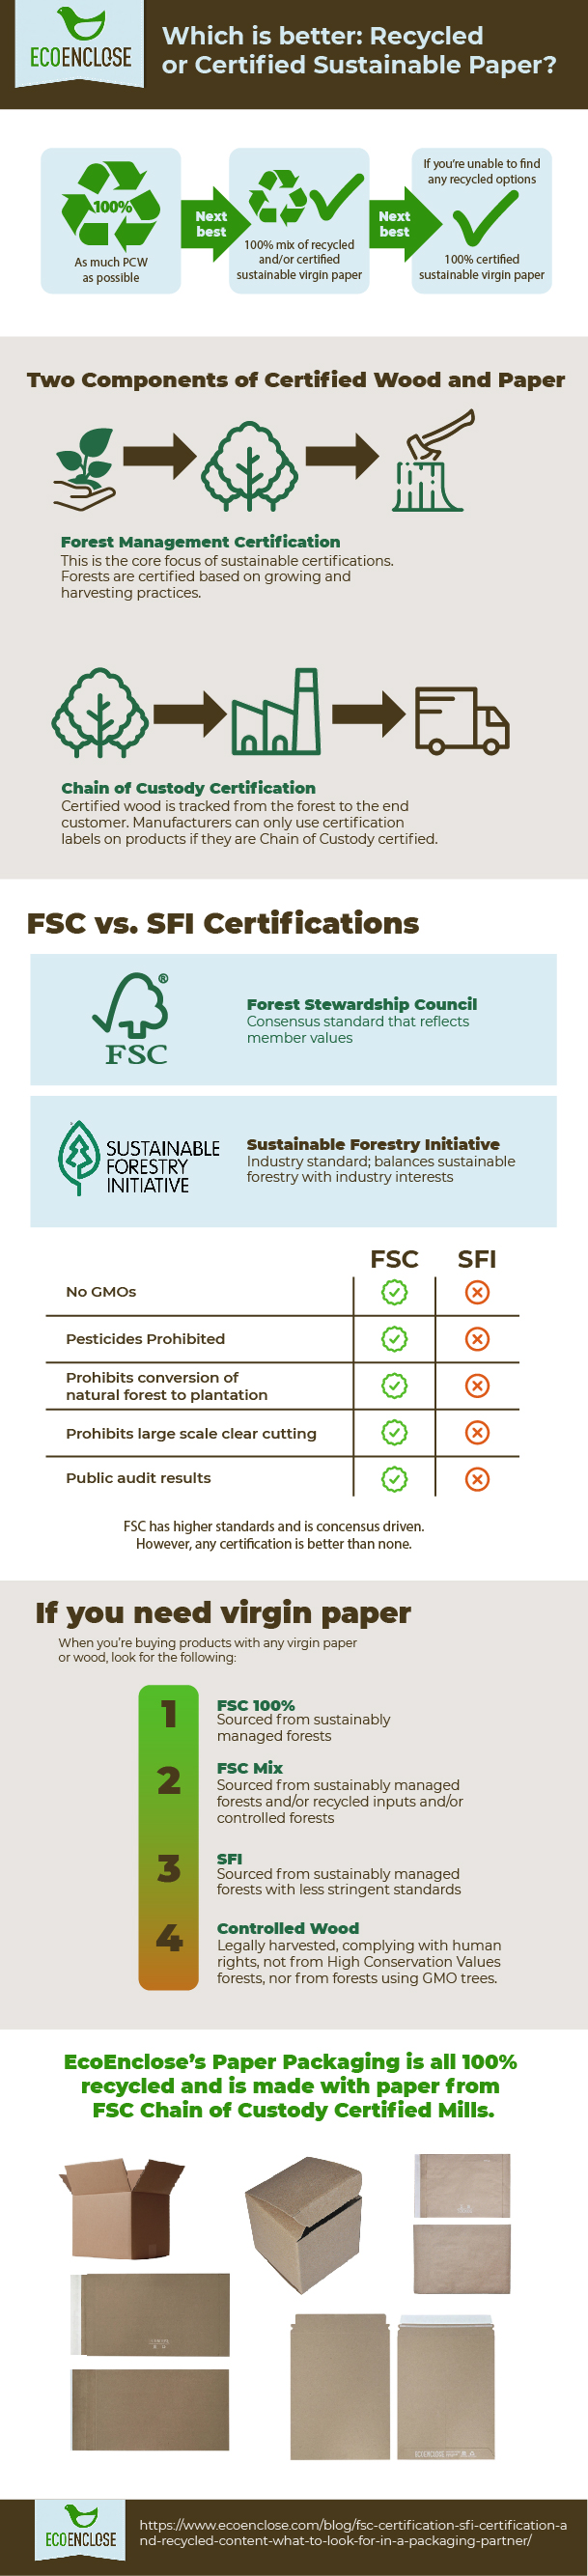 infographic-fsc-certification-versus-recycled.jpg